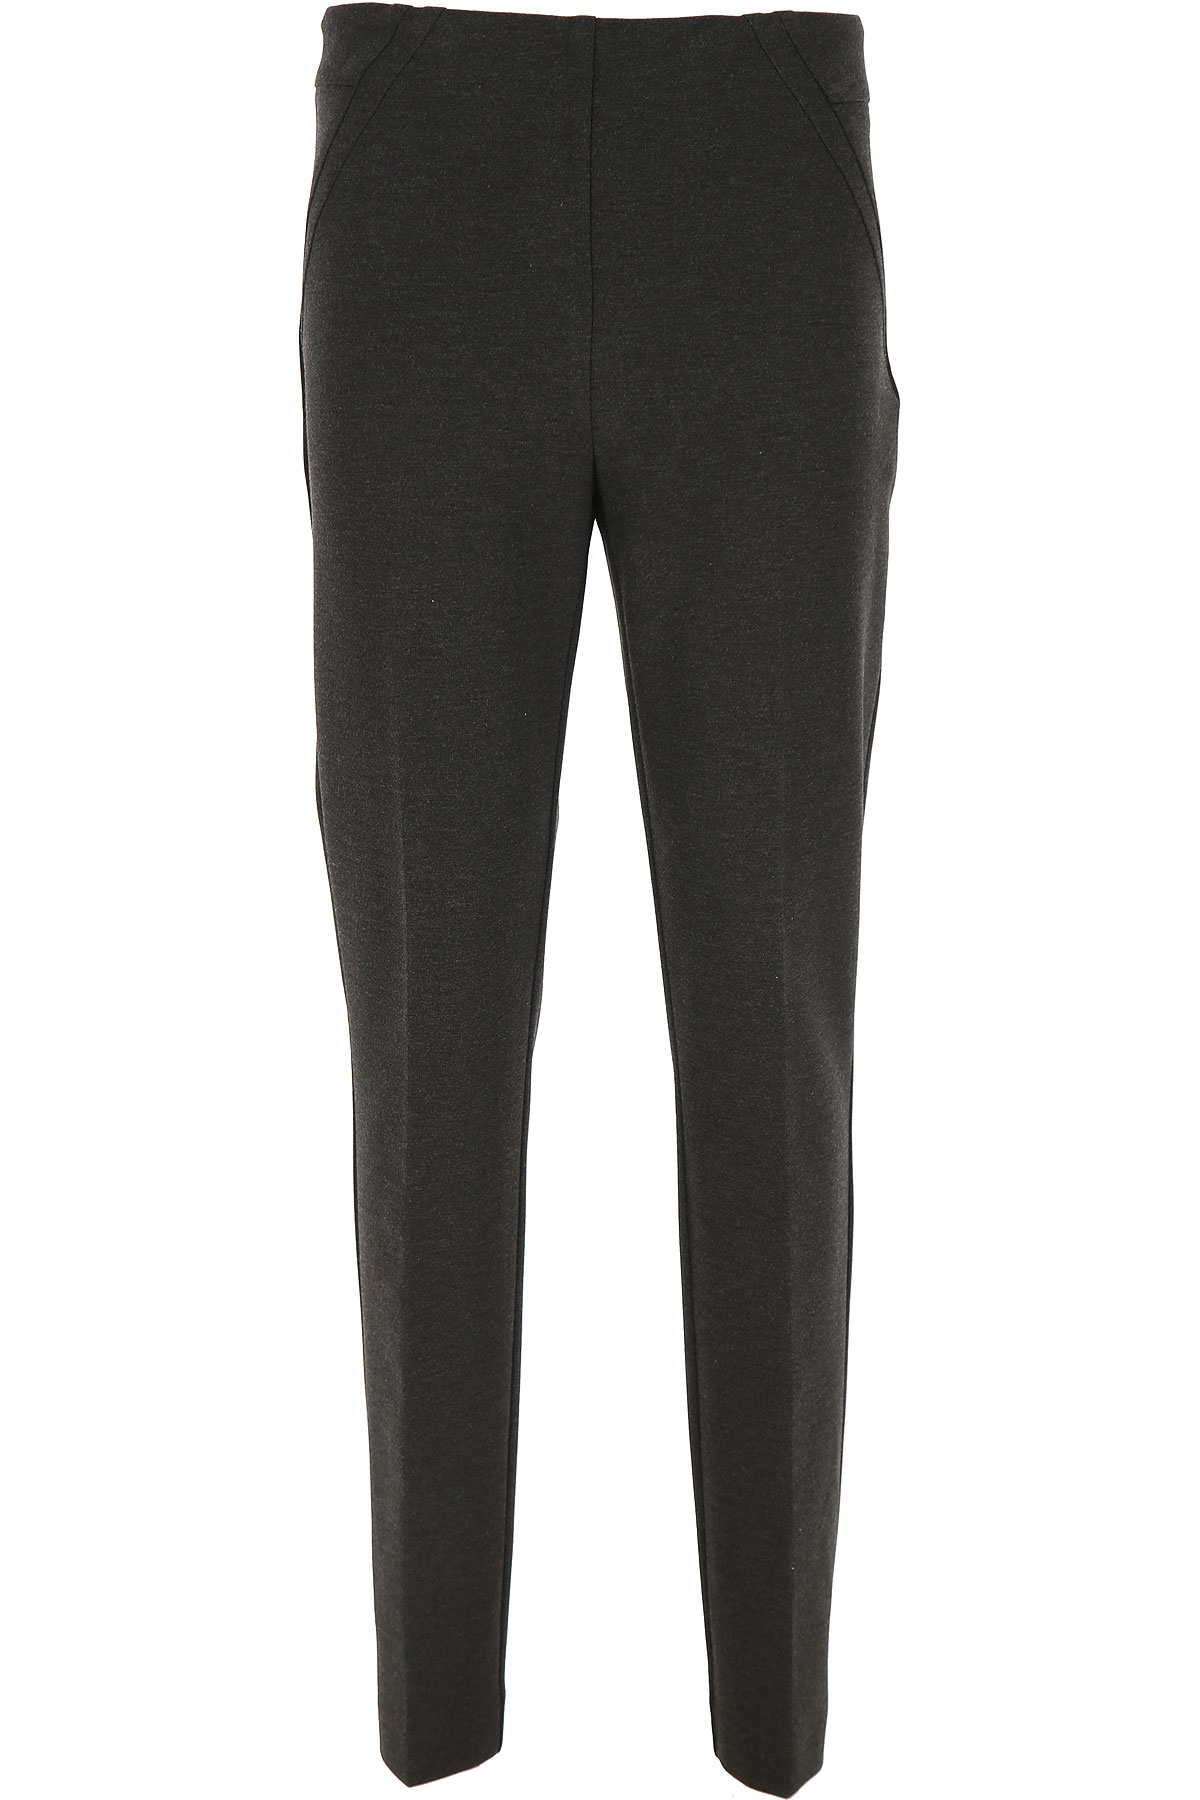 Joseph Ribkoff Pants for Women On Sale, antracite, viscosa, 2019, 30 32